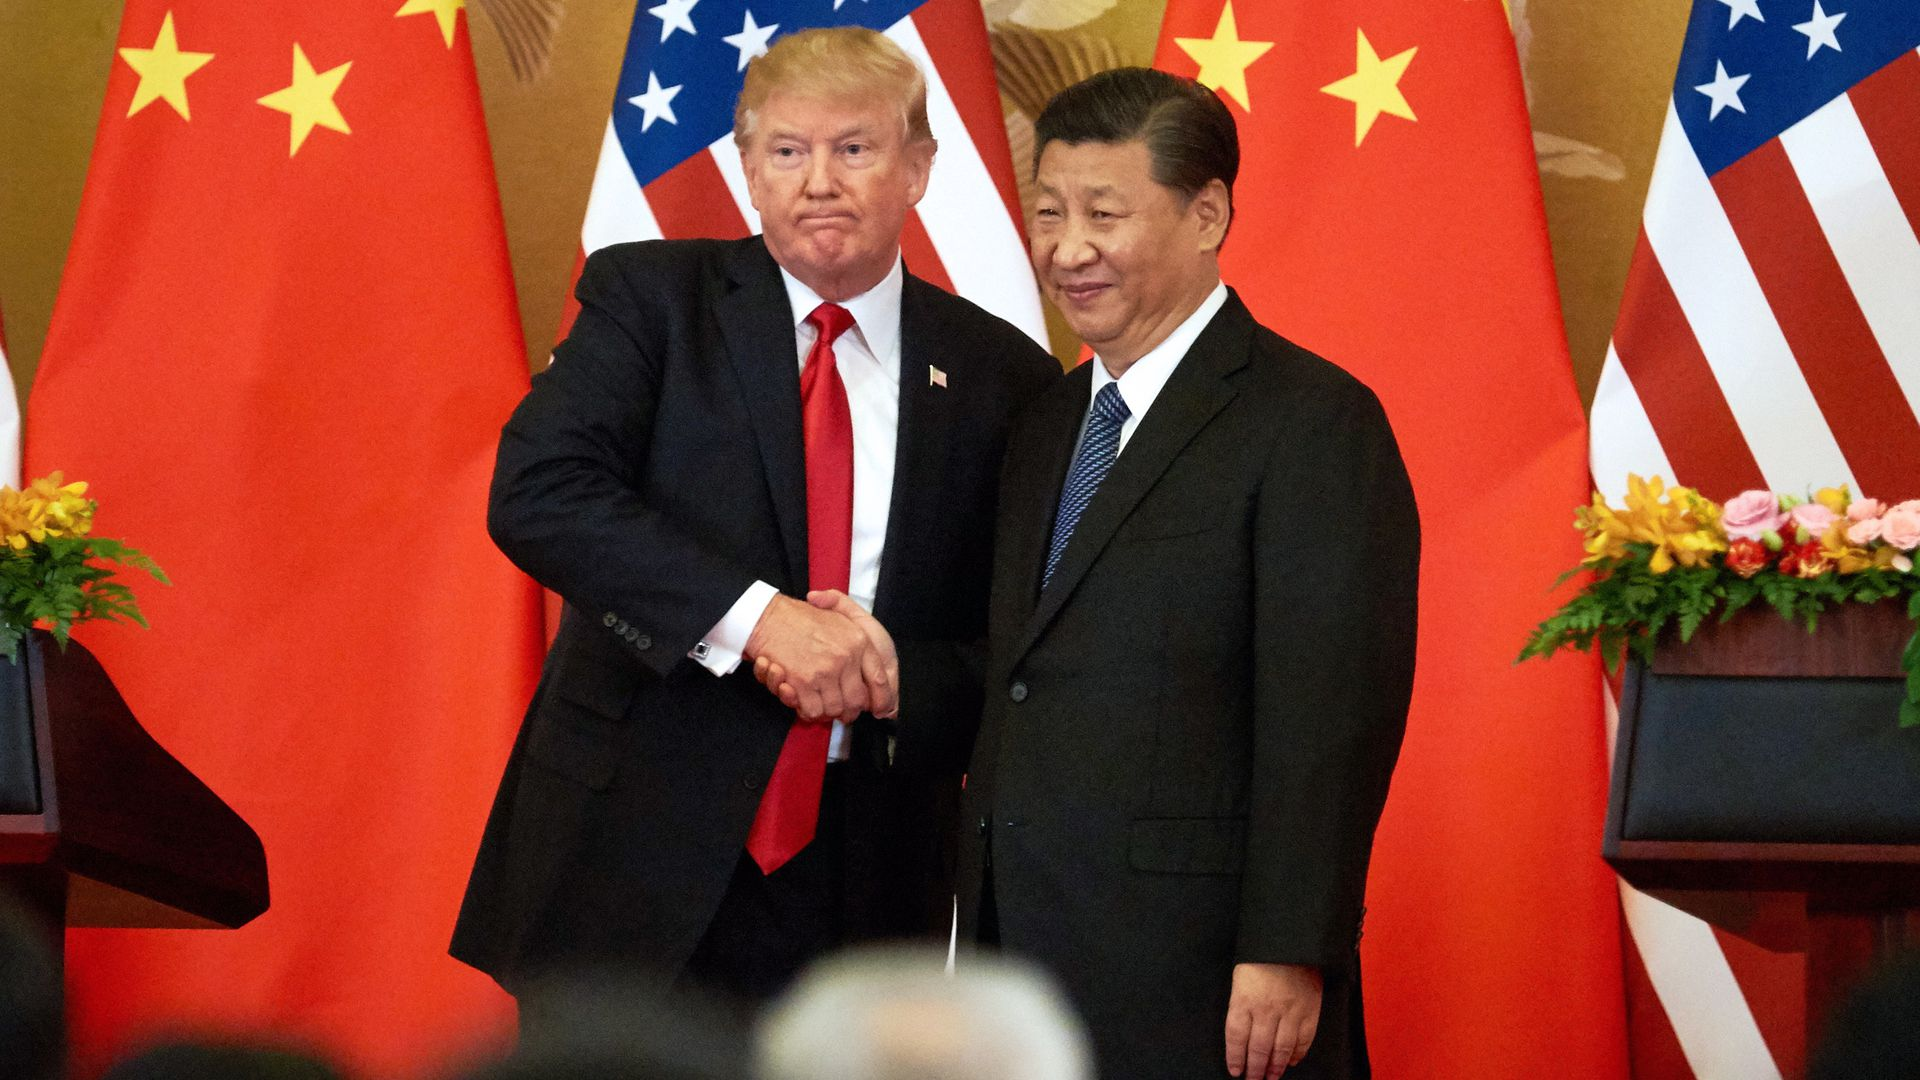 President Trump shakes hands with Chinese president Xi